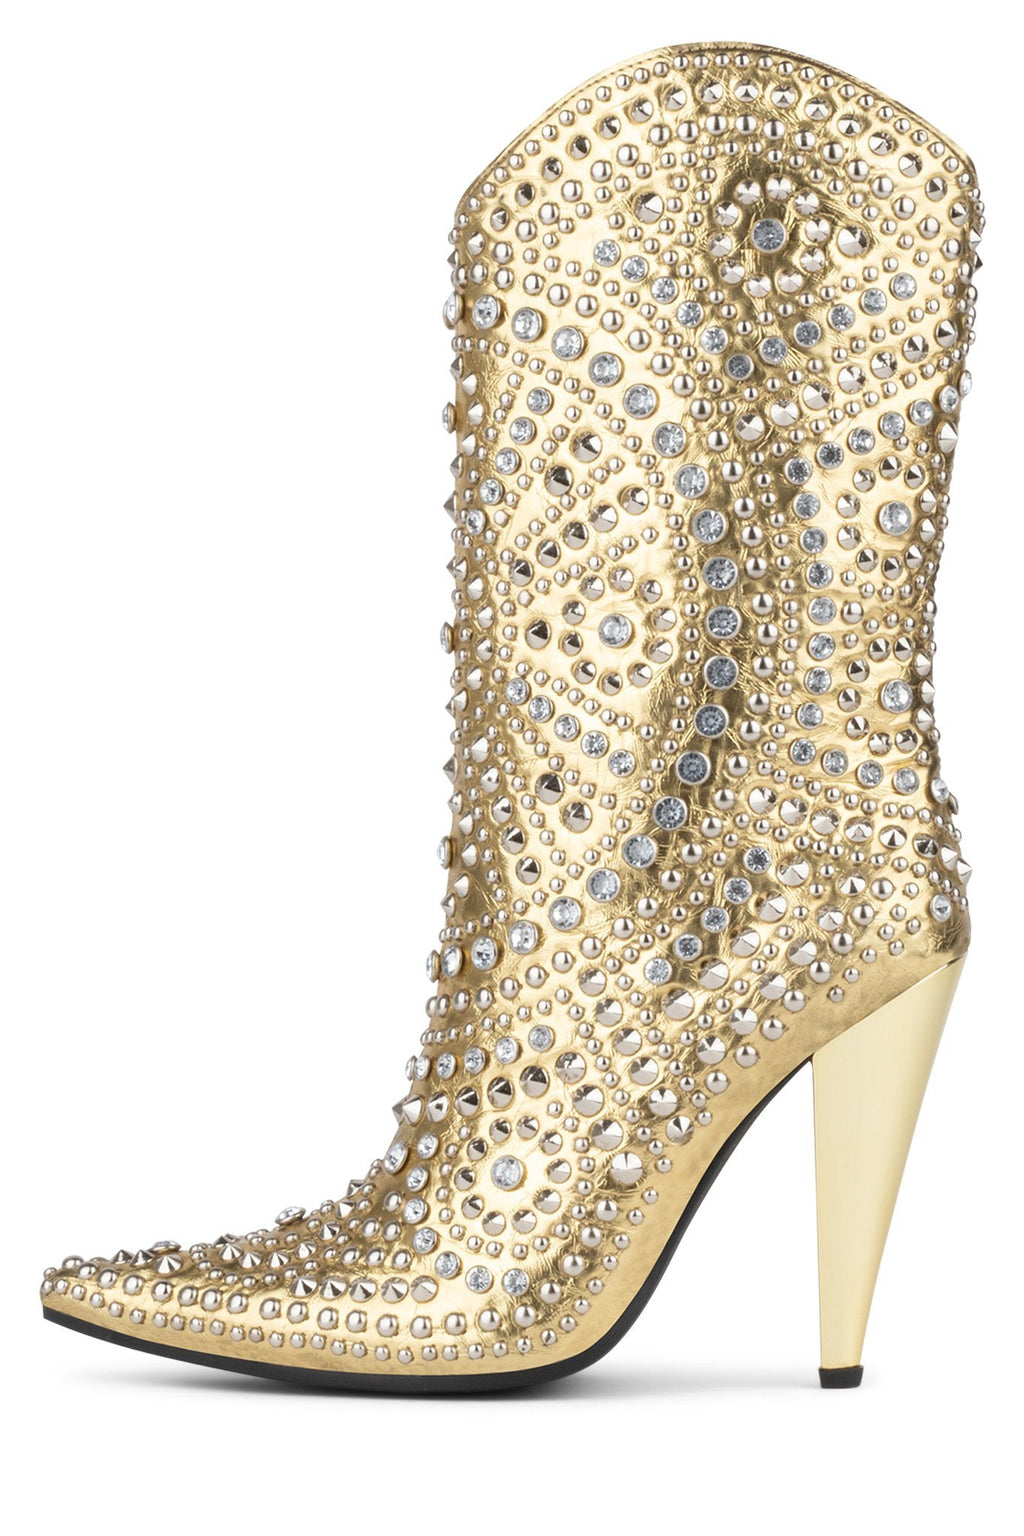 STUDLET Heeled Boot YYH Yellow Gold Silver 6